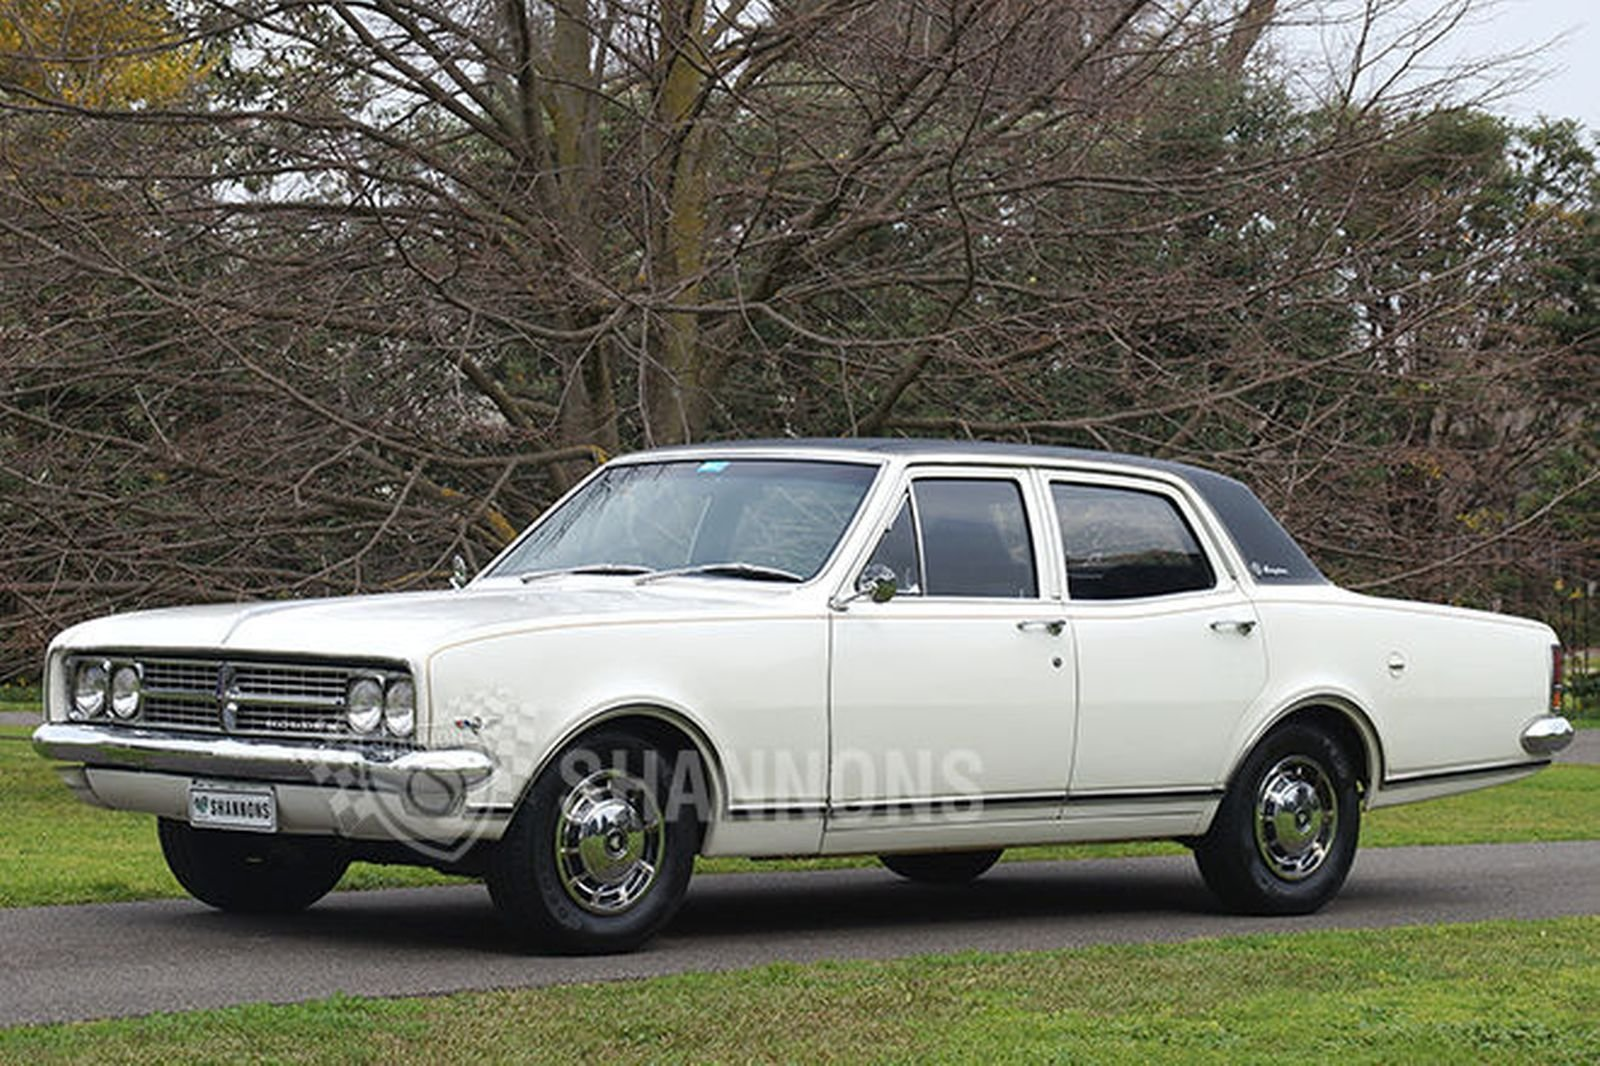 New Sold Holden Hk Brougham 307 Sedan Auctions Lot 44 On This Month